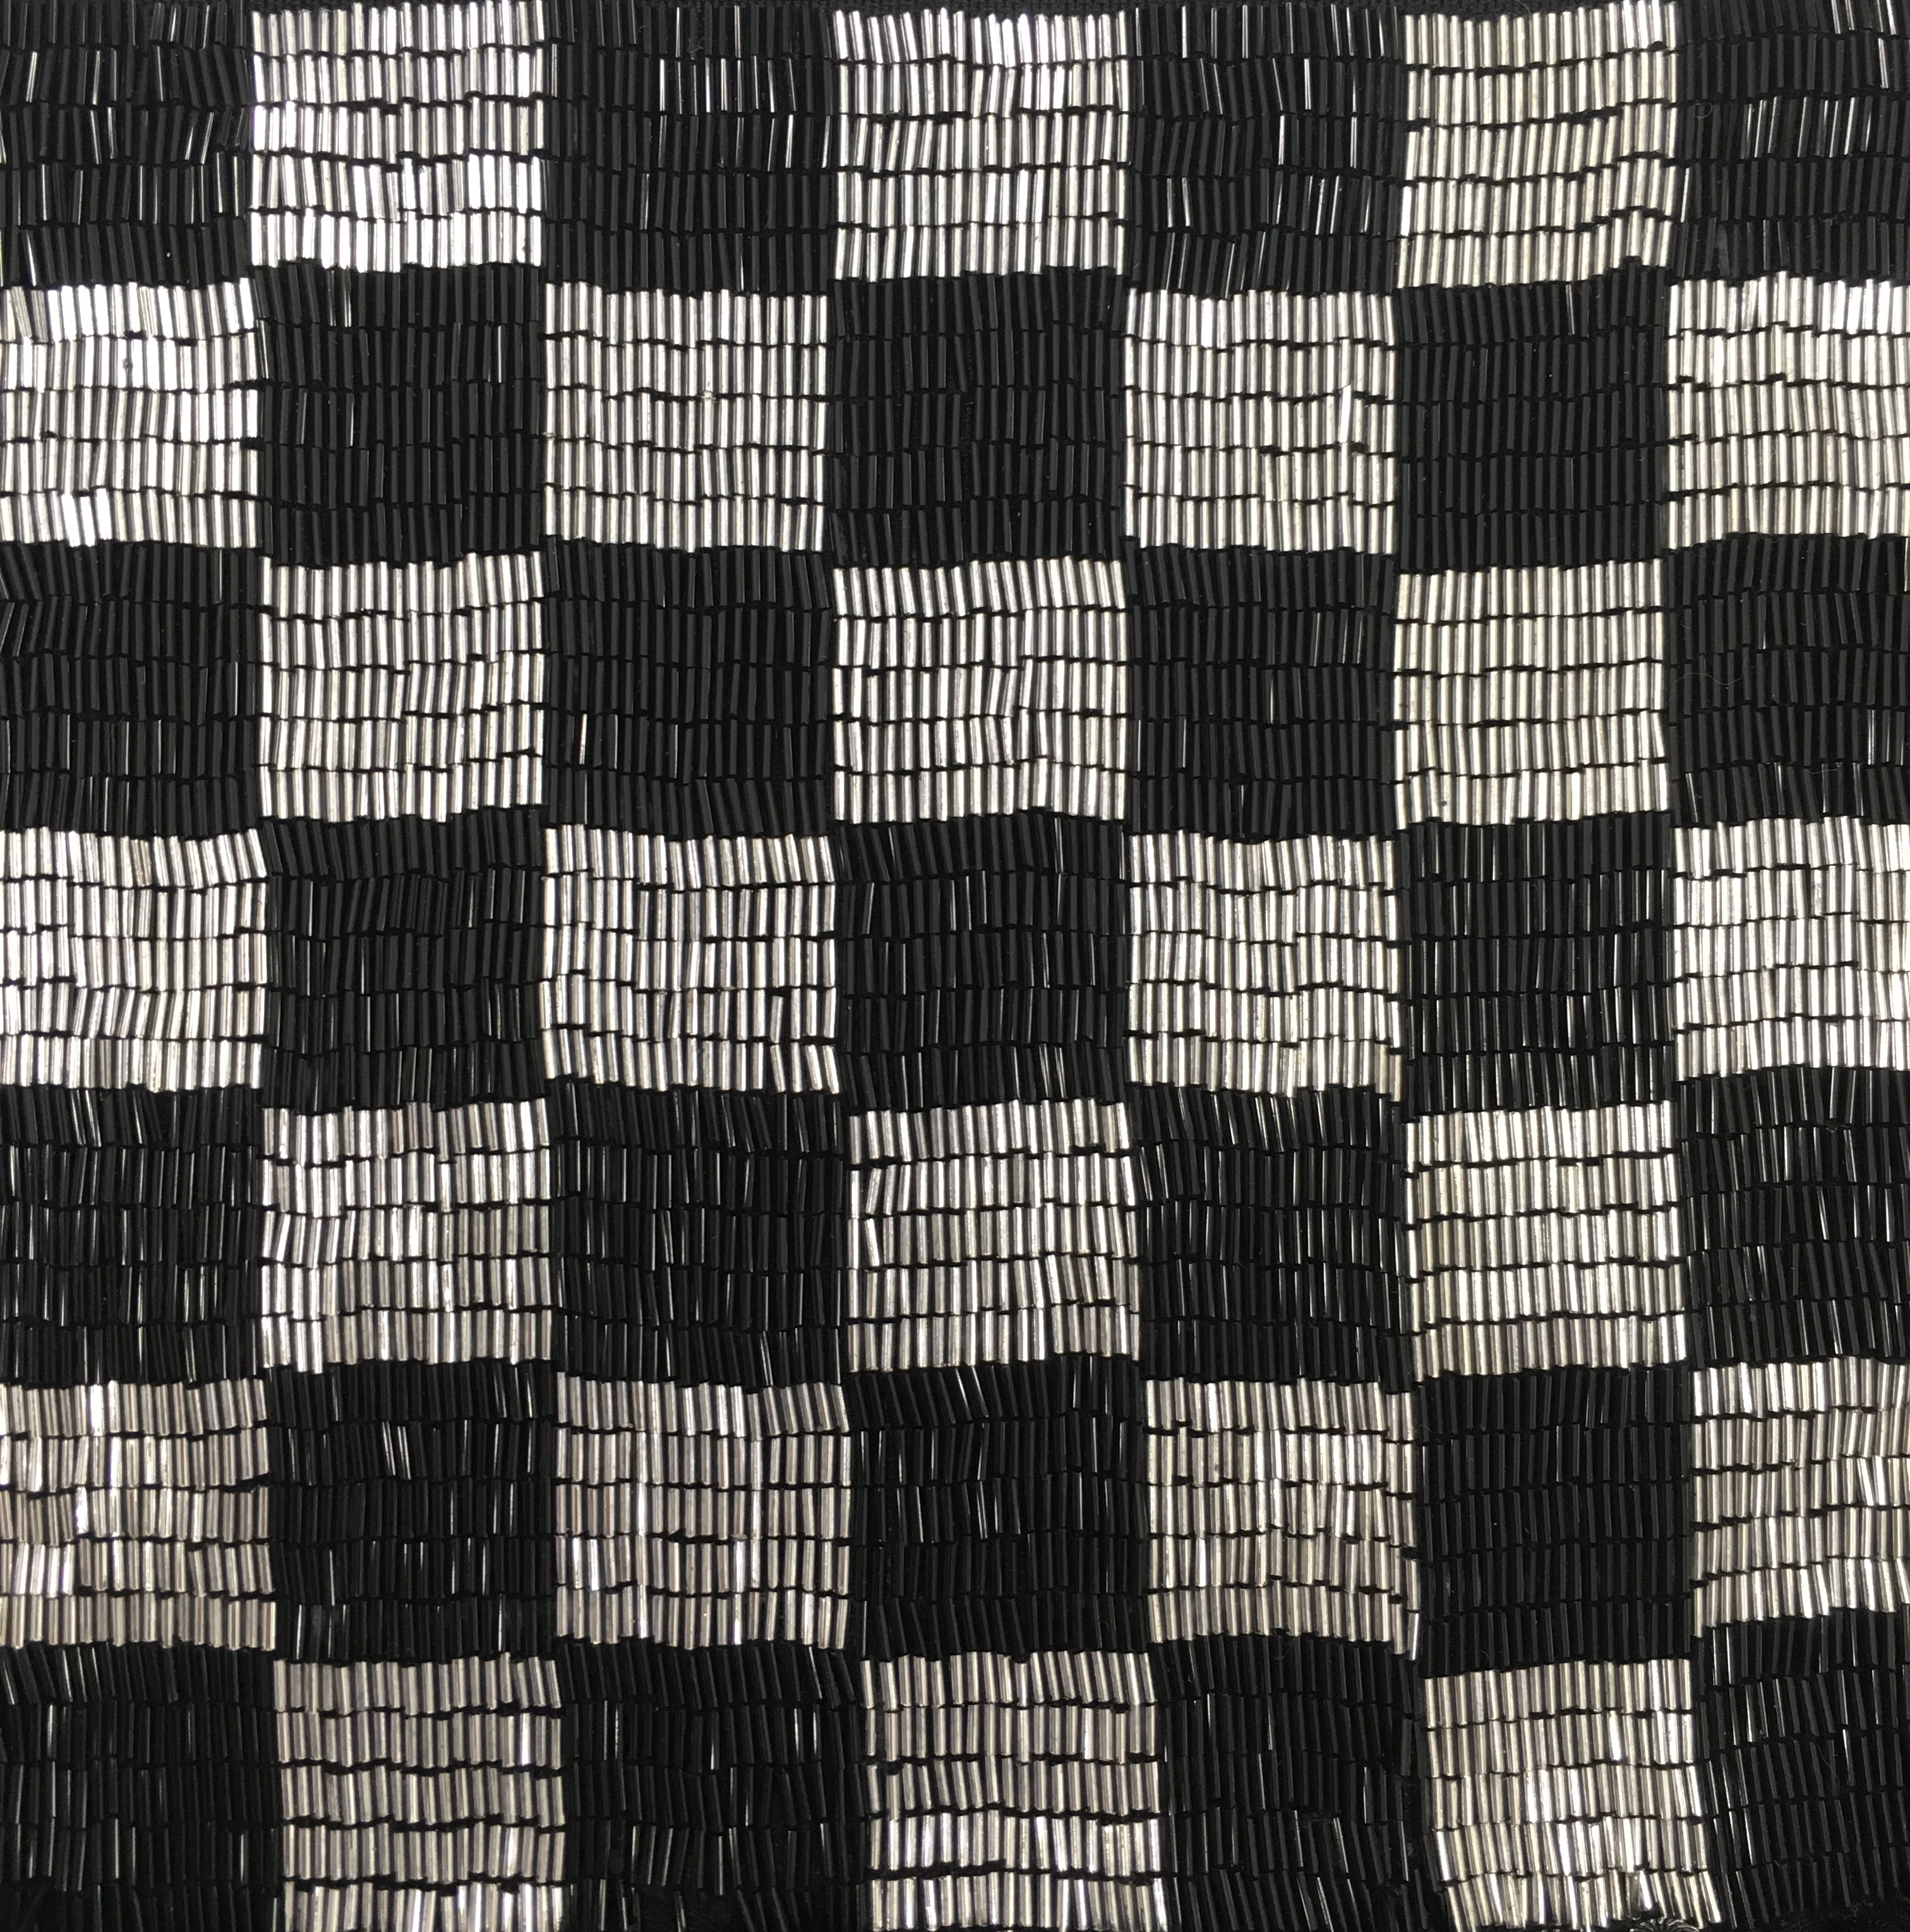 CHECKERBOARD EMBROIDERY